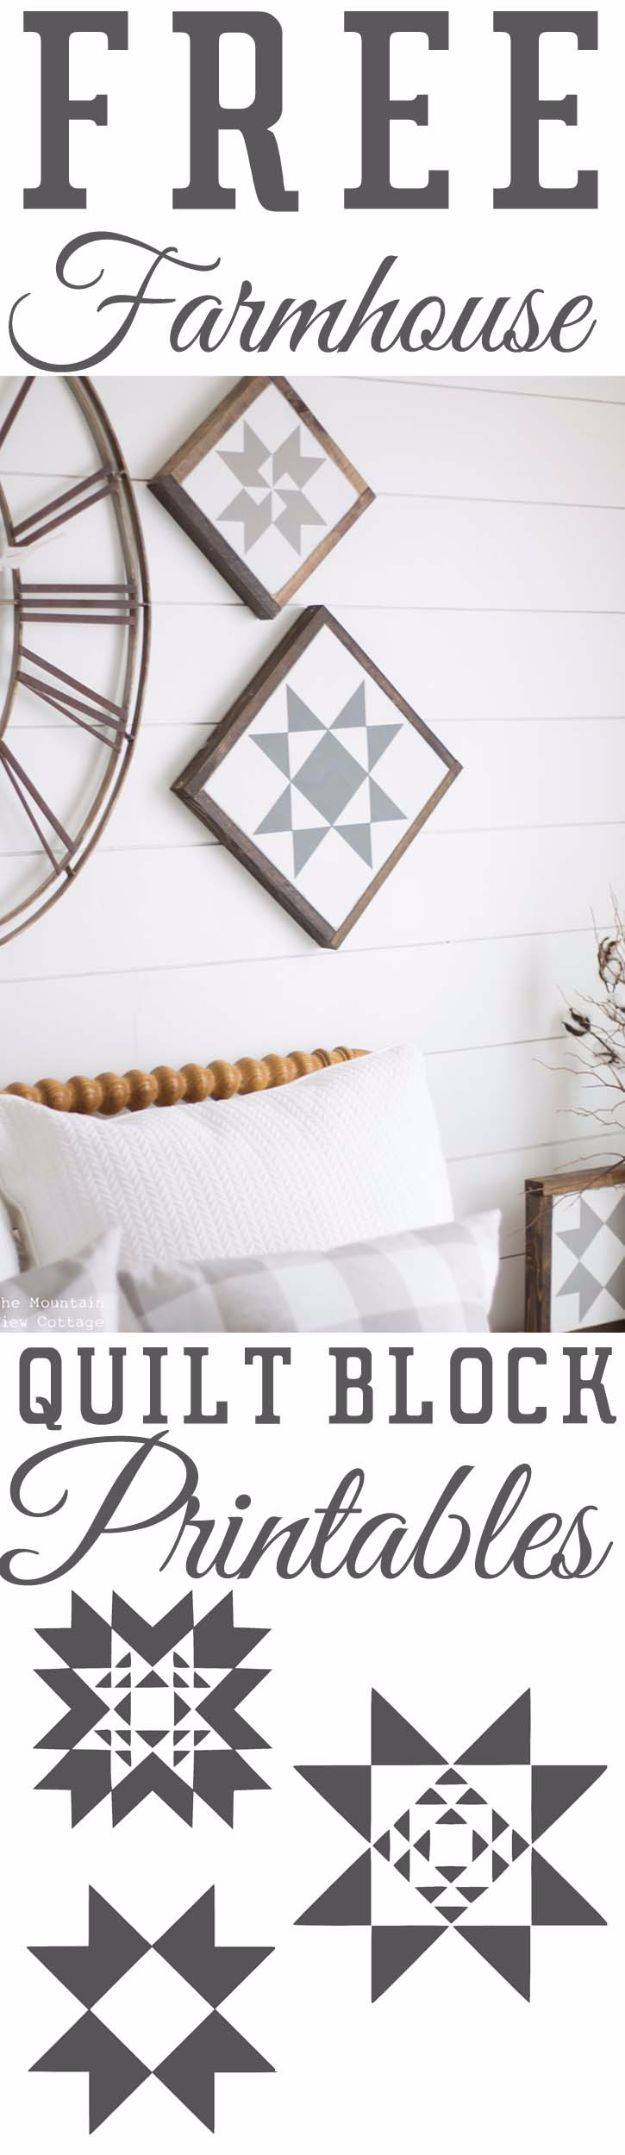 Free Printables For Your Walls - Free Farmhouse Quilt Block Printables - Best Free Prints for Wall Art and Picture to Print for Home and Bedroom Decor - Ideas for the Home, Organization - Quotes for Bedroom and Kitchens, Vintage Bathroom Pictures - Downloadable Printable for Kids - DIY and Crafts by DIY JOY http://diyjoy.com/free-printables-walls